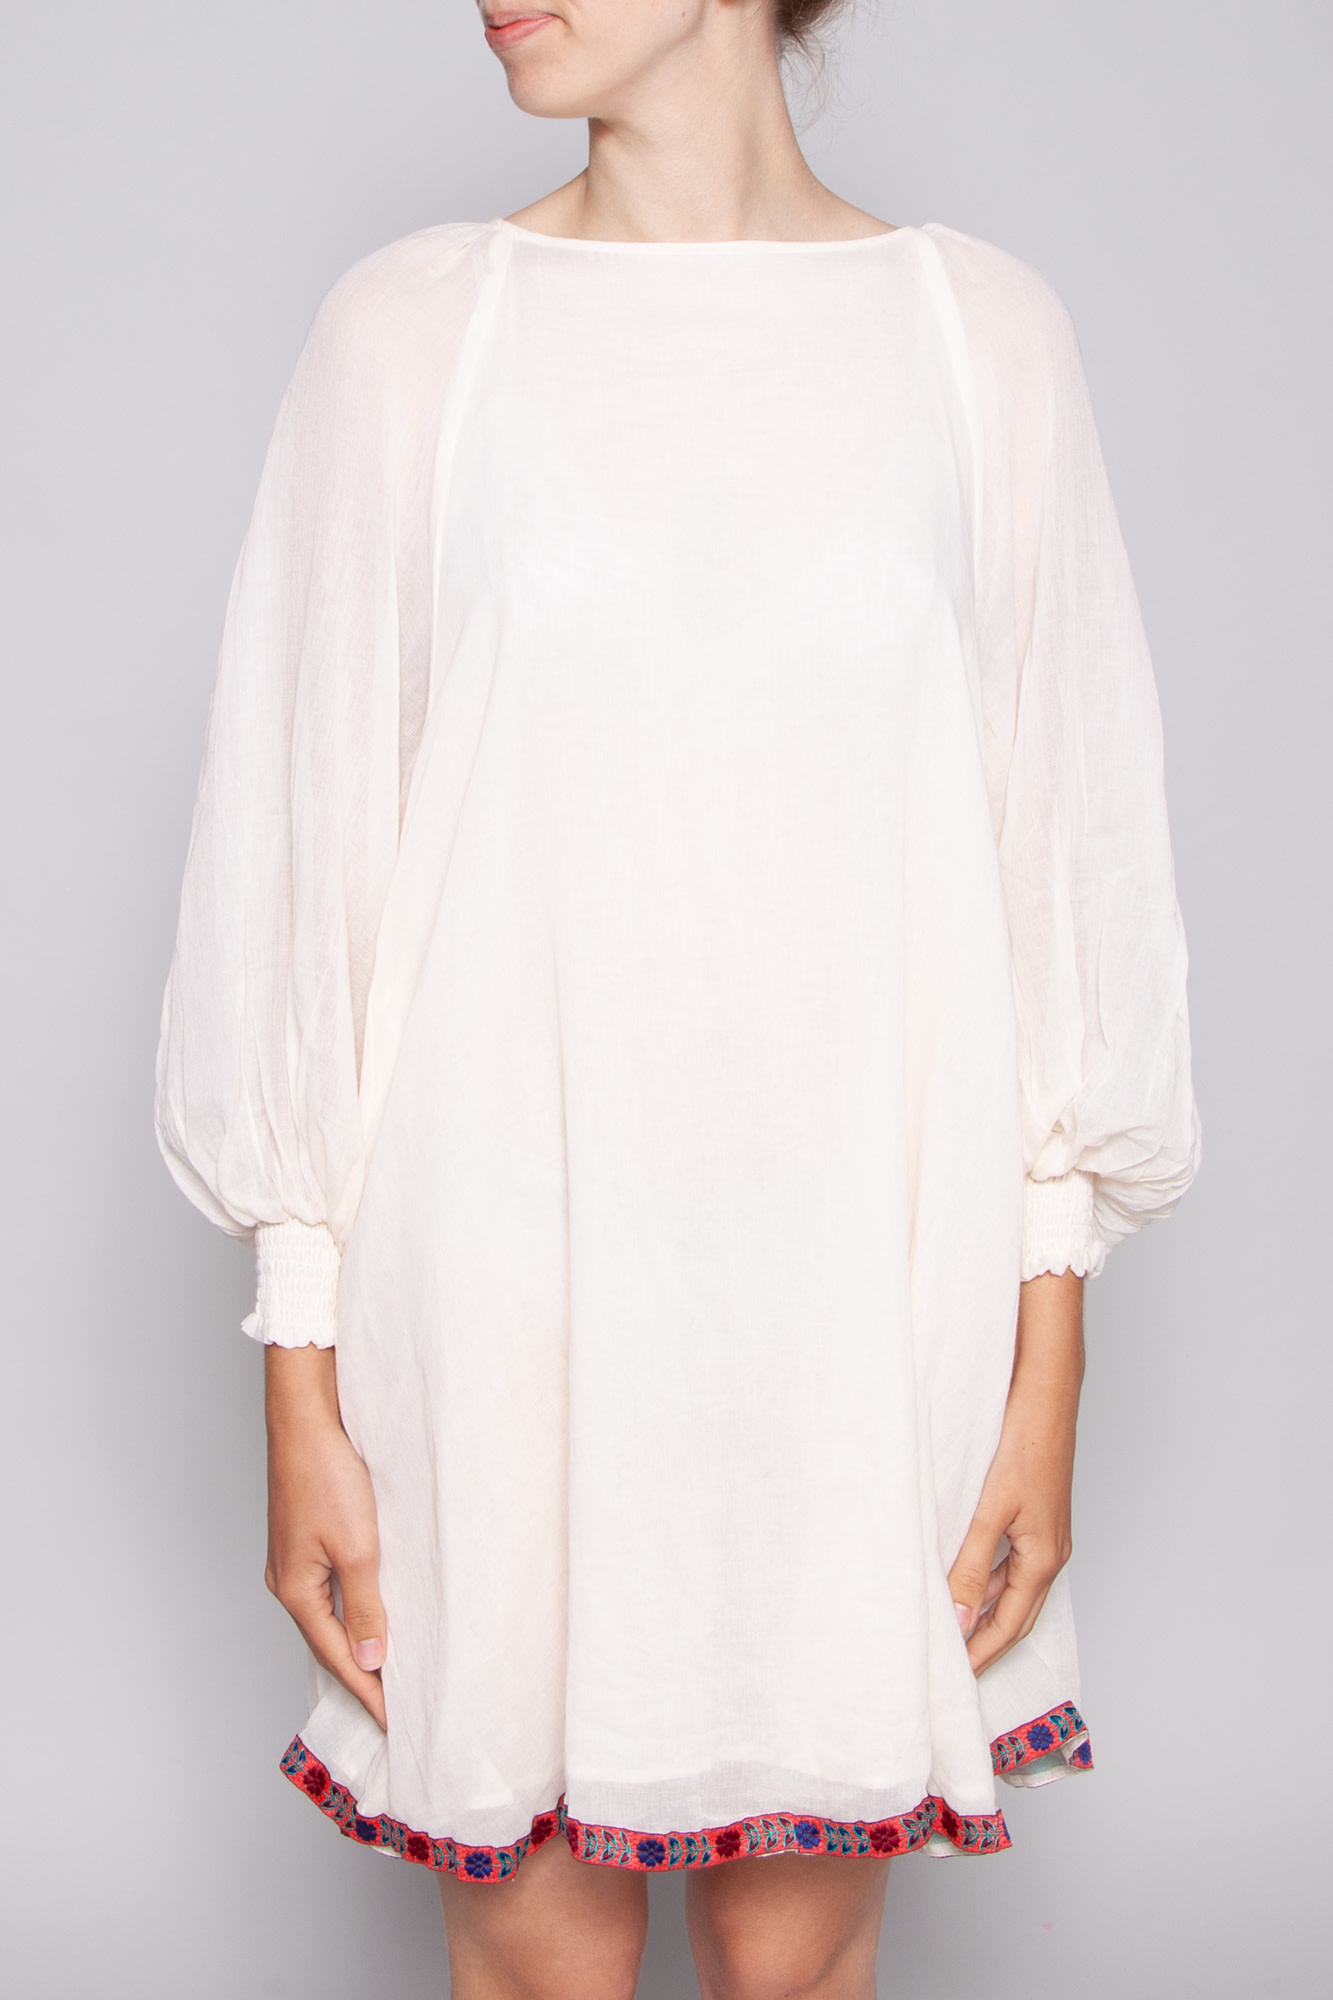 Pitusa WHITE DRESS WITH EMBROIDERY - NEW WITH TAG